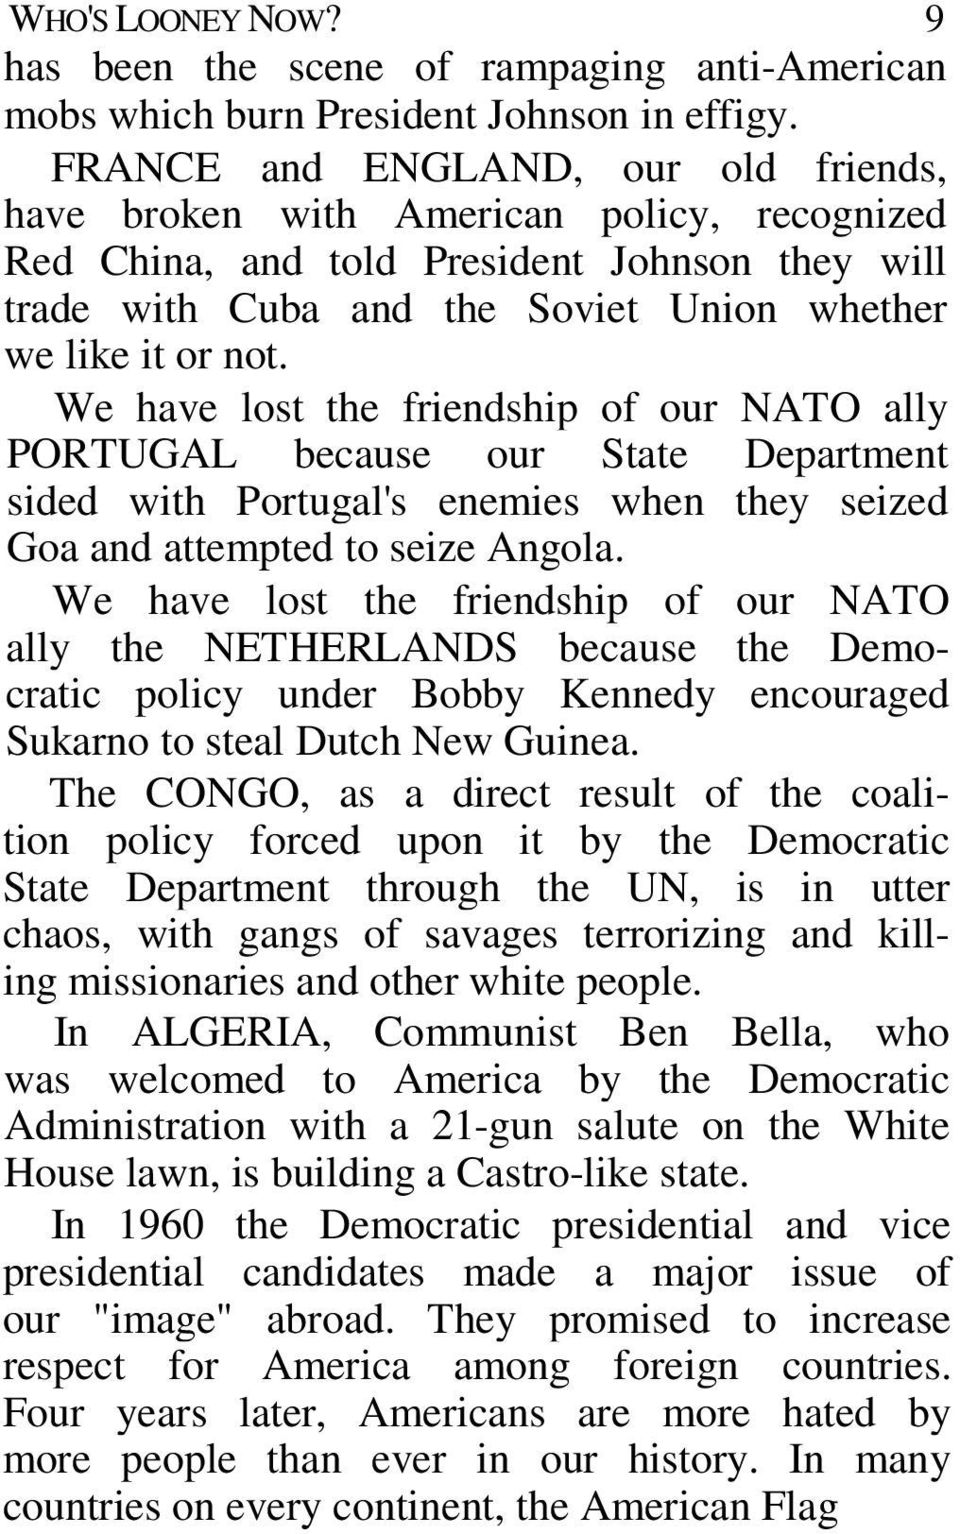 We have lost the friendship of our NATO ally PORTUGAL because our State Department sided with Portugal's enemies when they seized Goa and attempted to seize Angola.